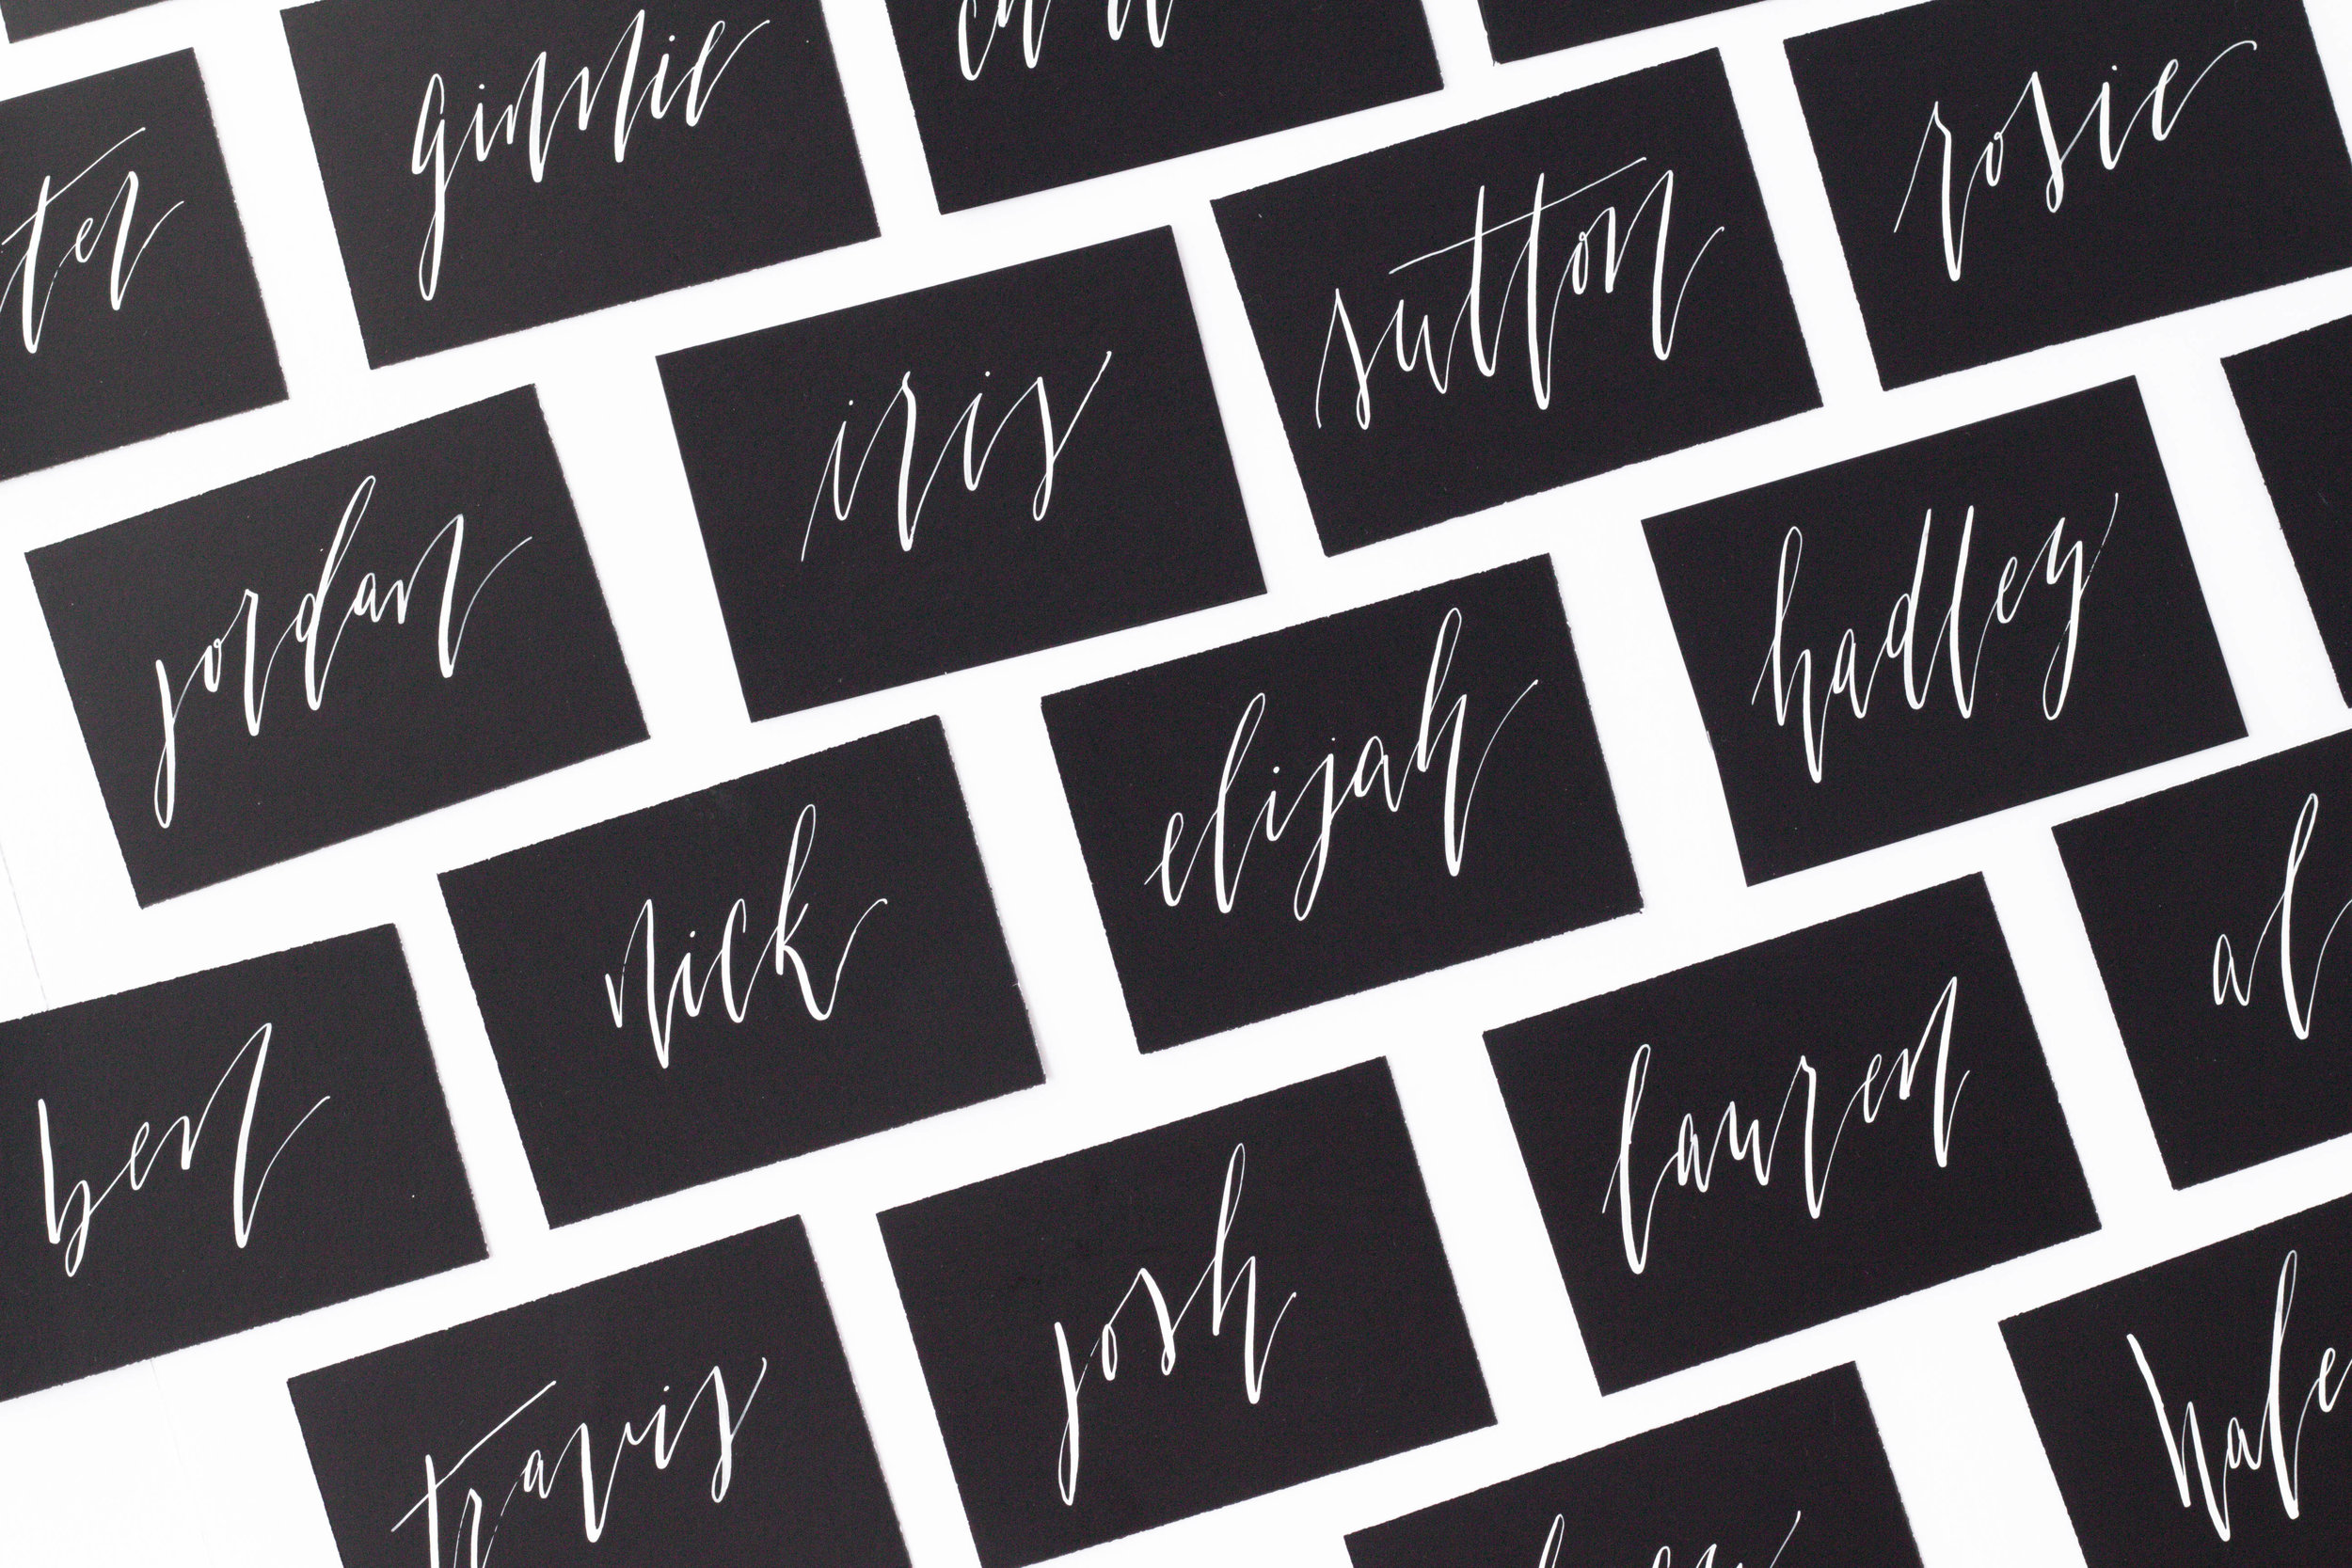 Calligraphy Place Cards - White Ink on Black Place Cards - Escort Cards - Wedding Details